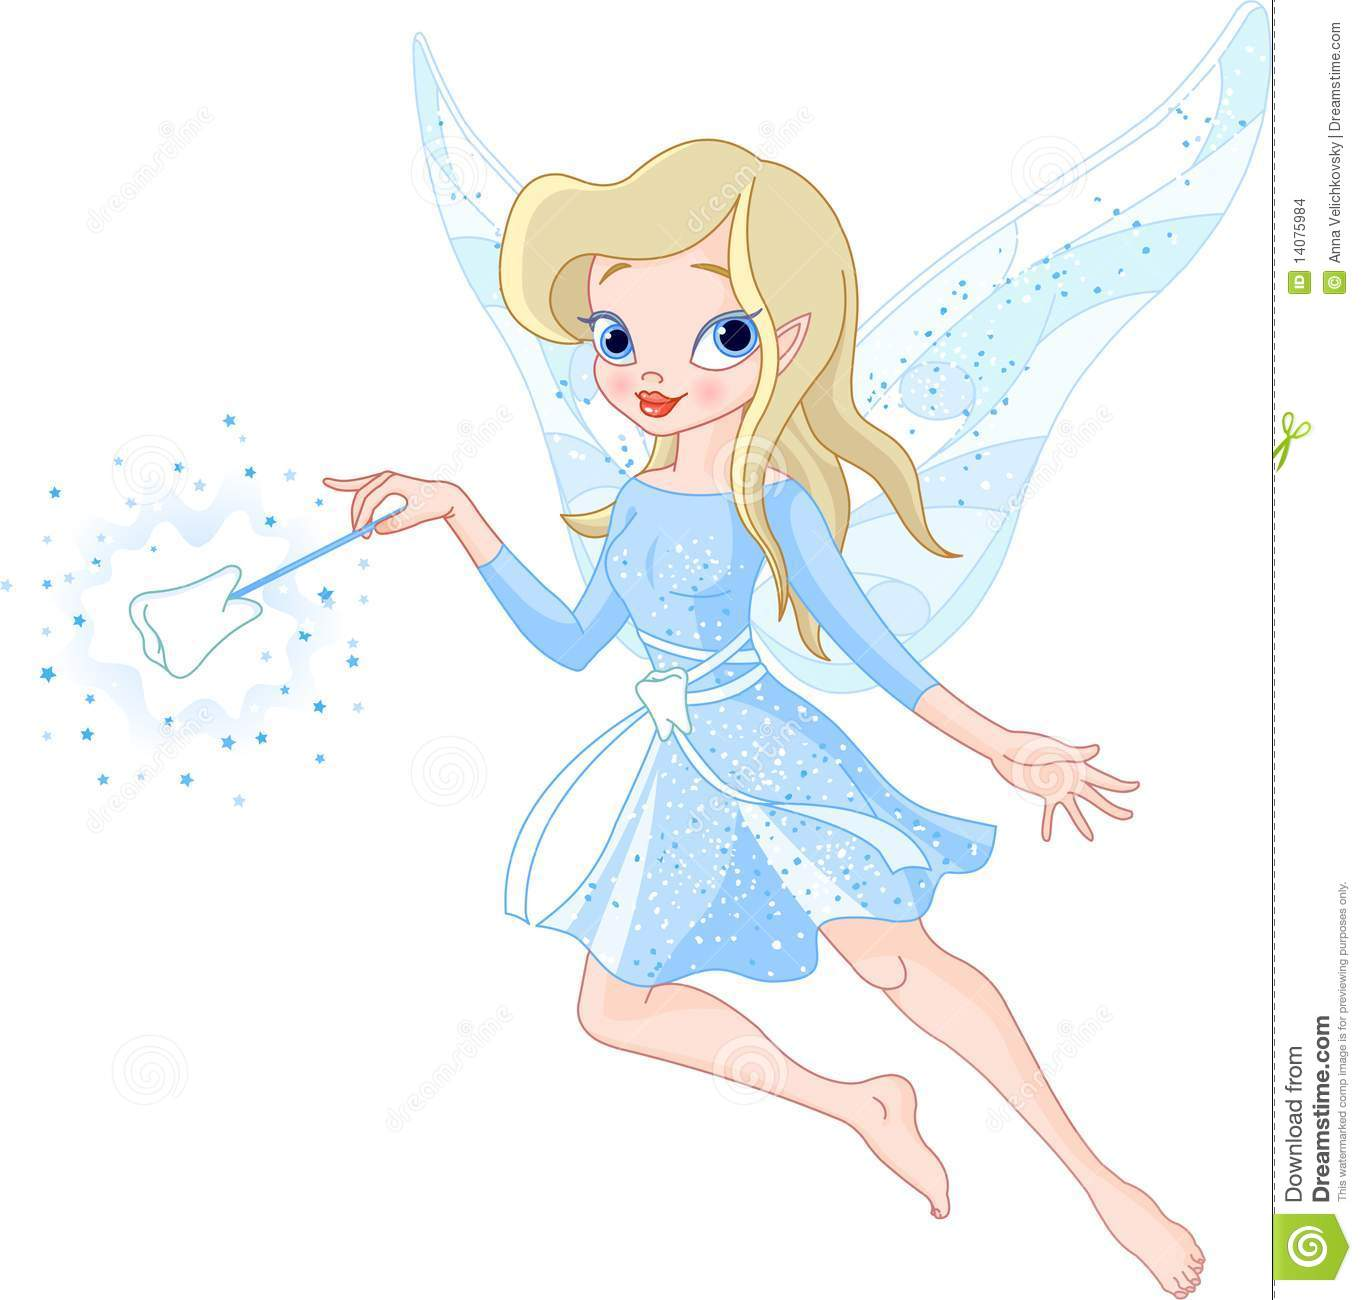 http://thumbs.dreamstime.com/z/tooth-fairy-magic-wand-14075984.jpg